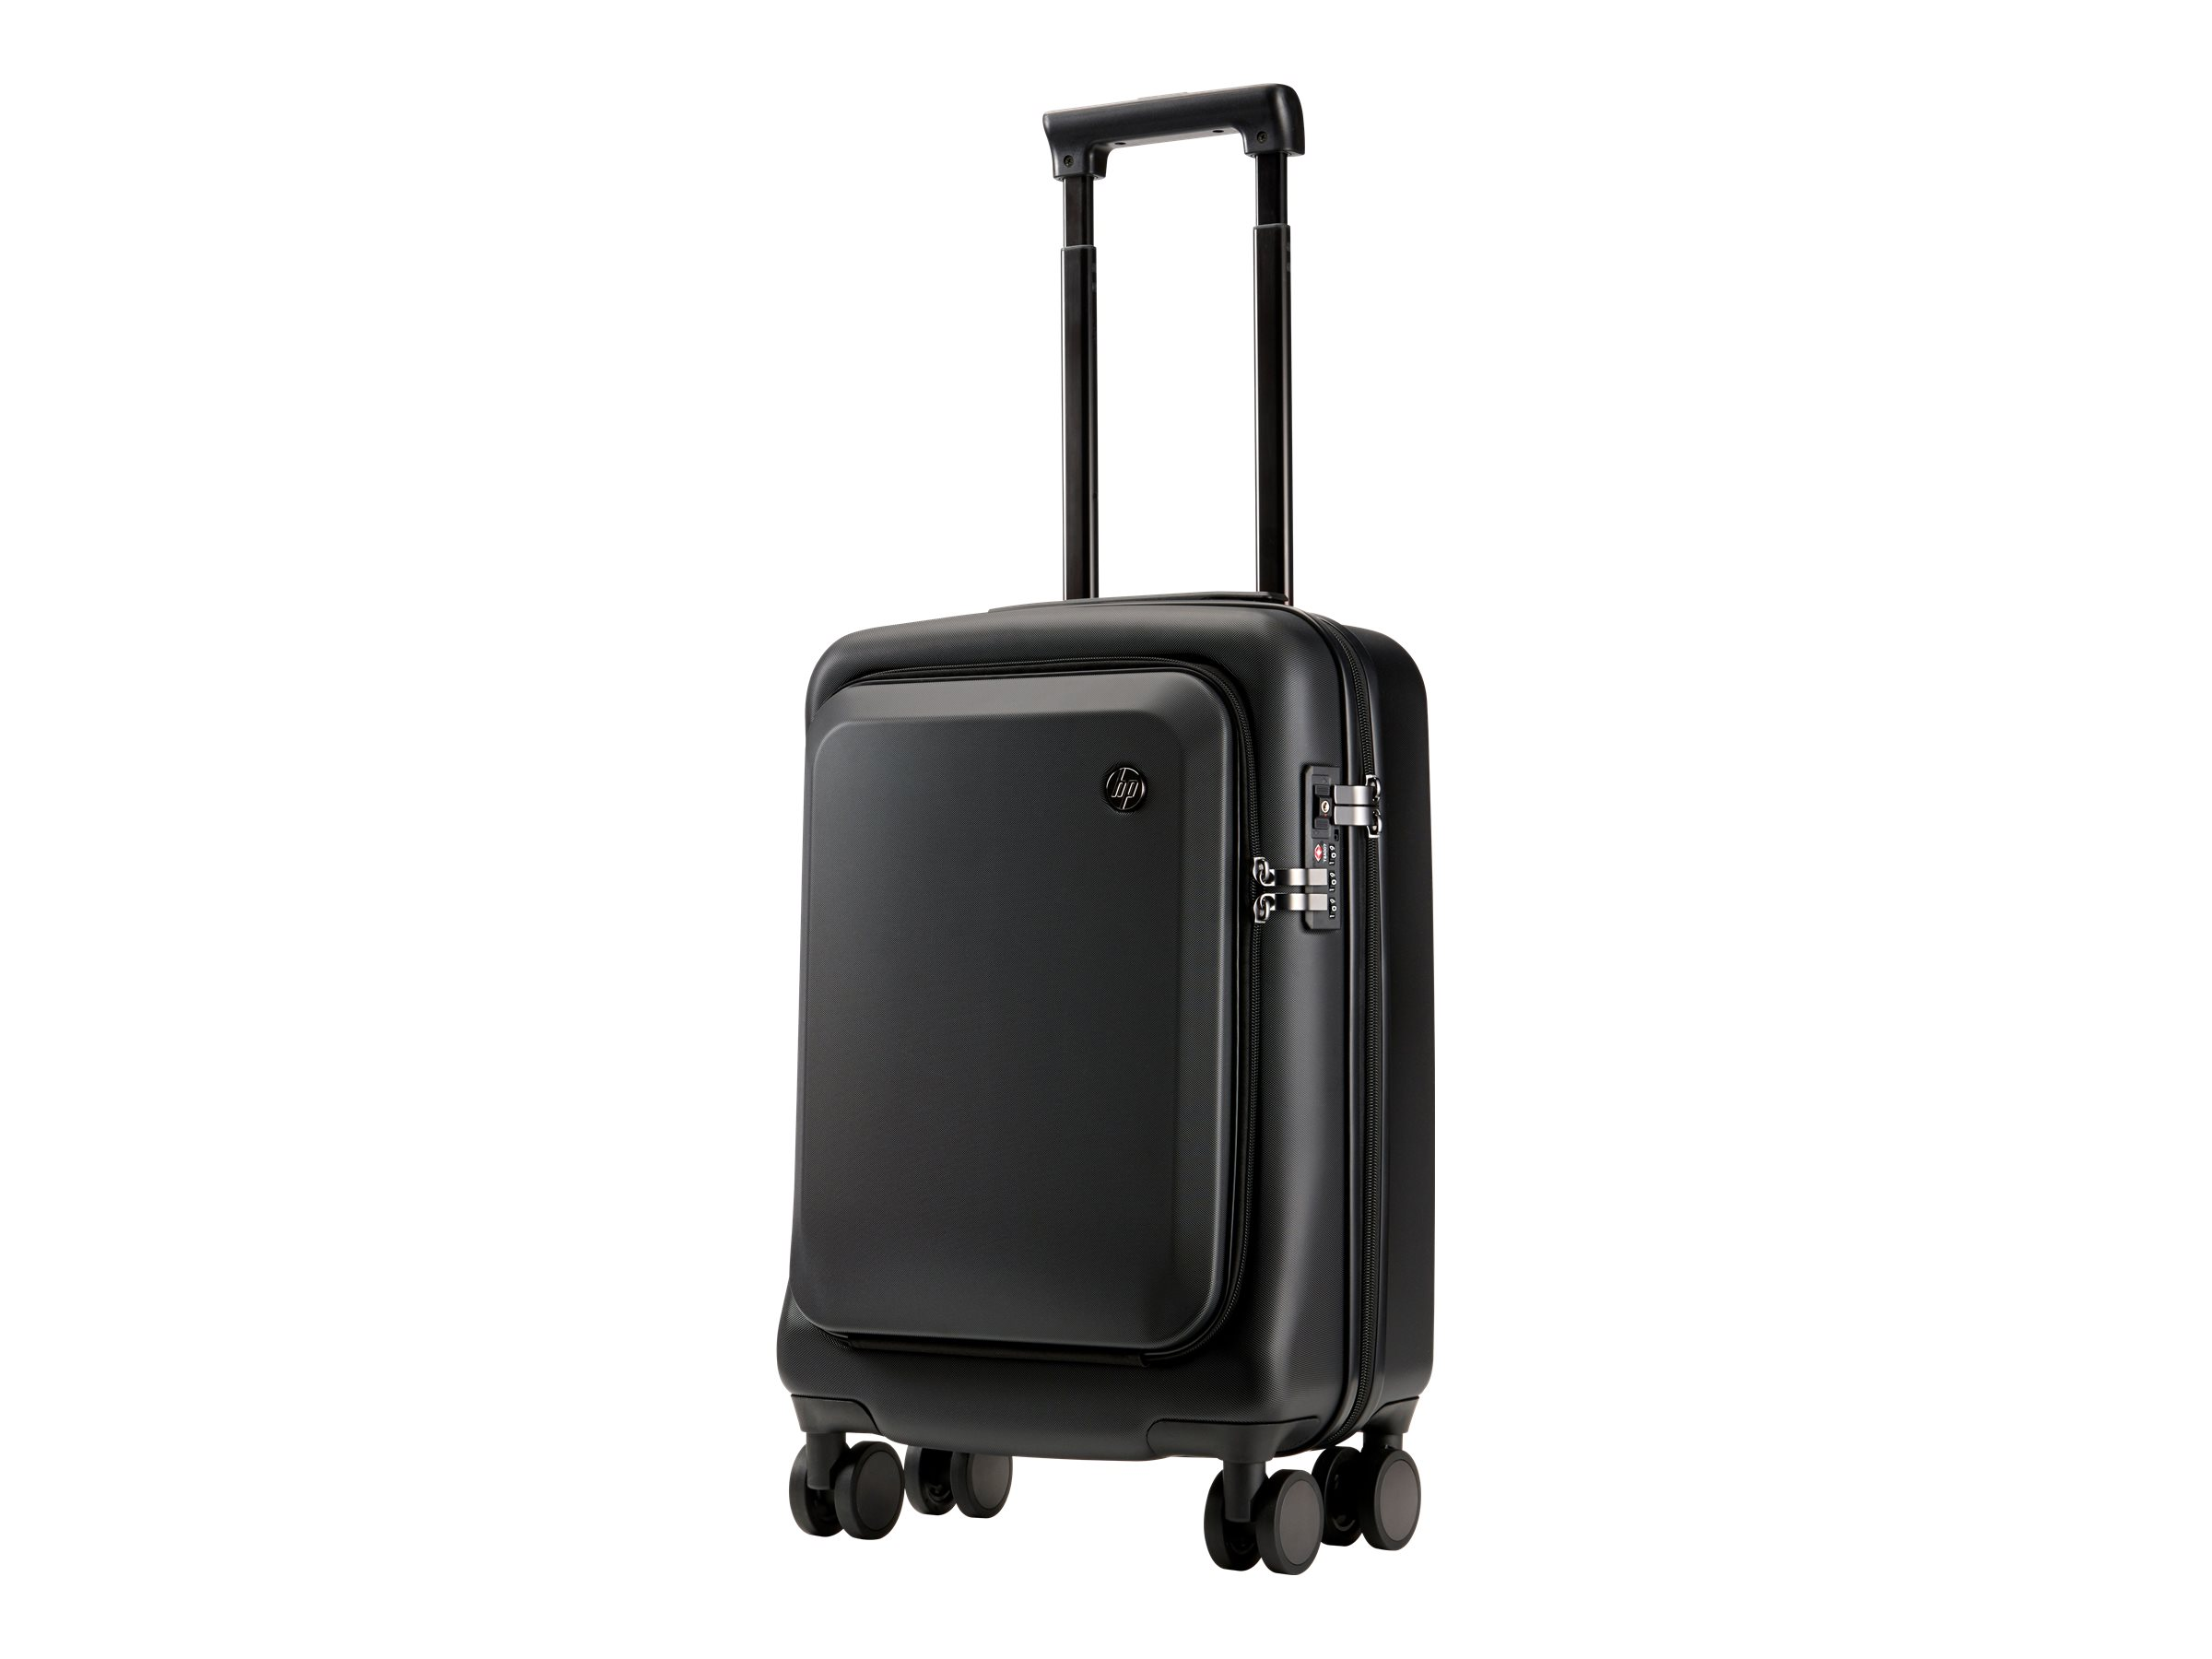 HP Inc. HP All in One Carry On Luggage 7ZE80AA